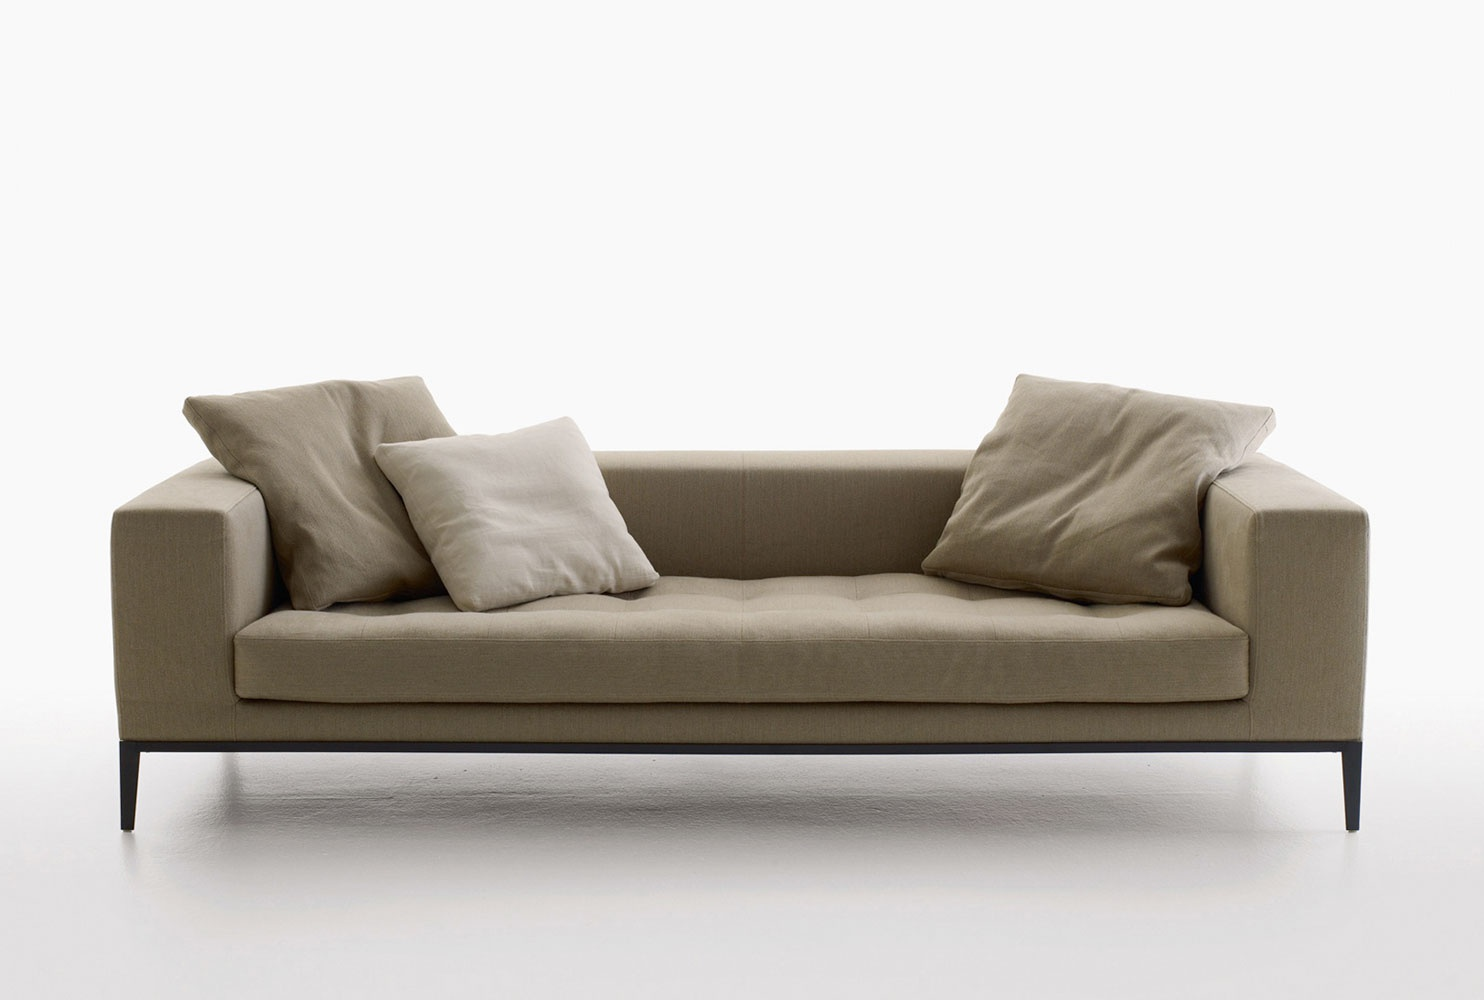 A Sofa With A Low Back, Simplex Maxalto